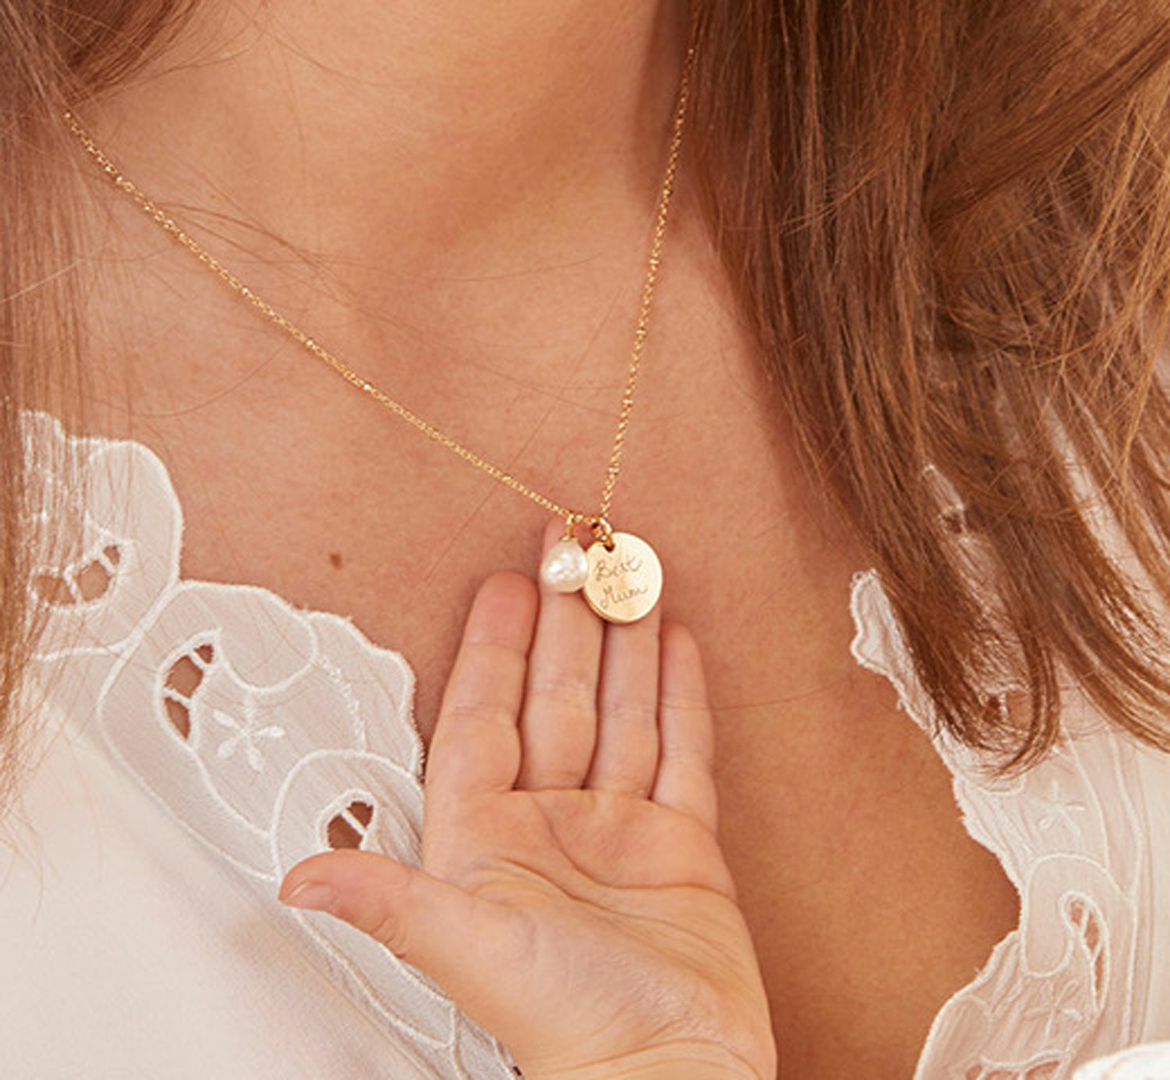 6-collier-perle-personnalise